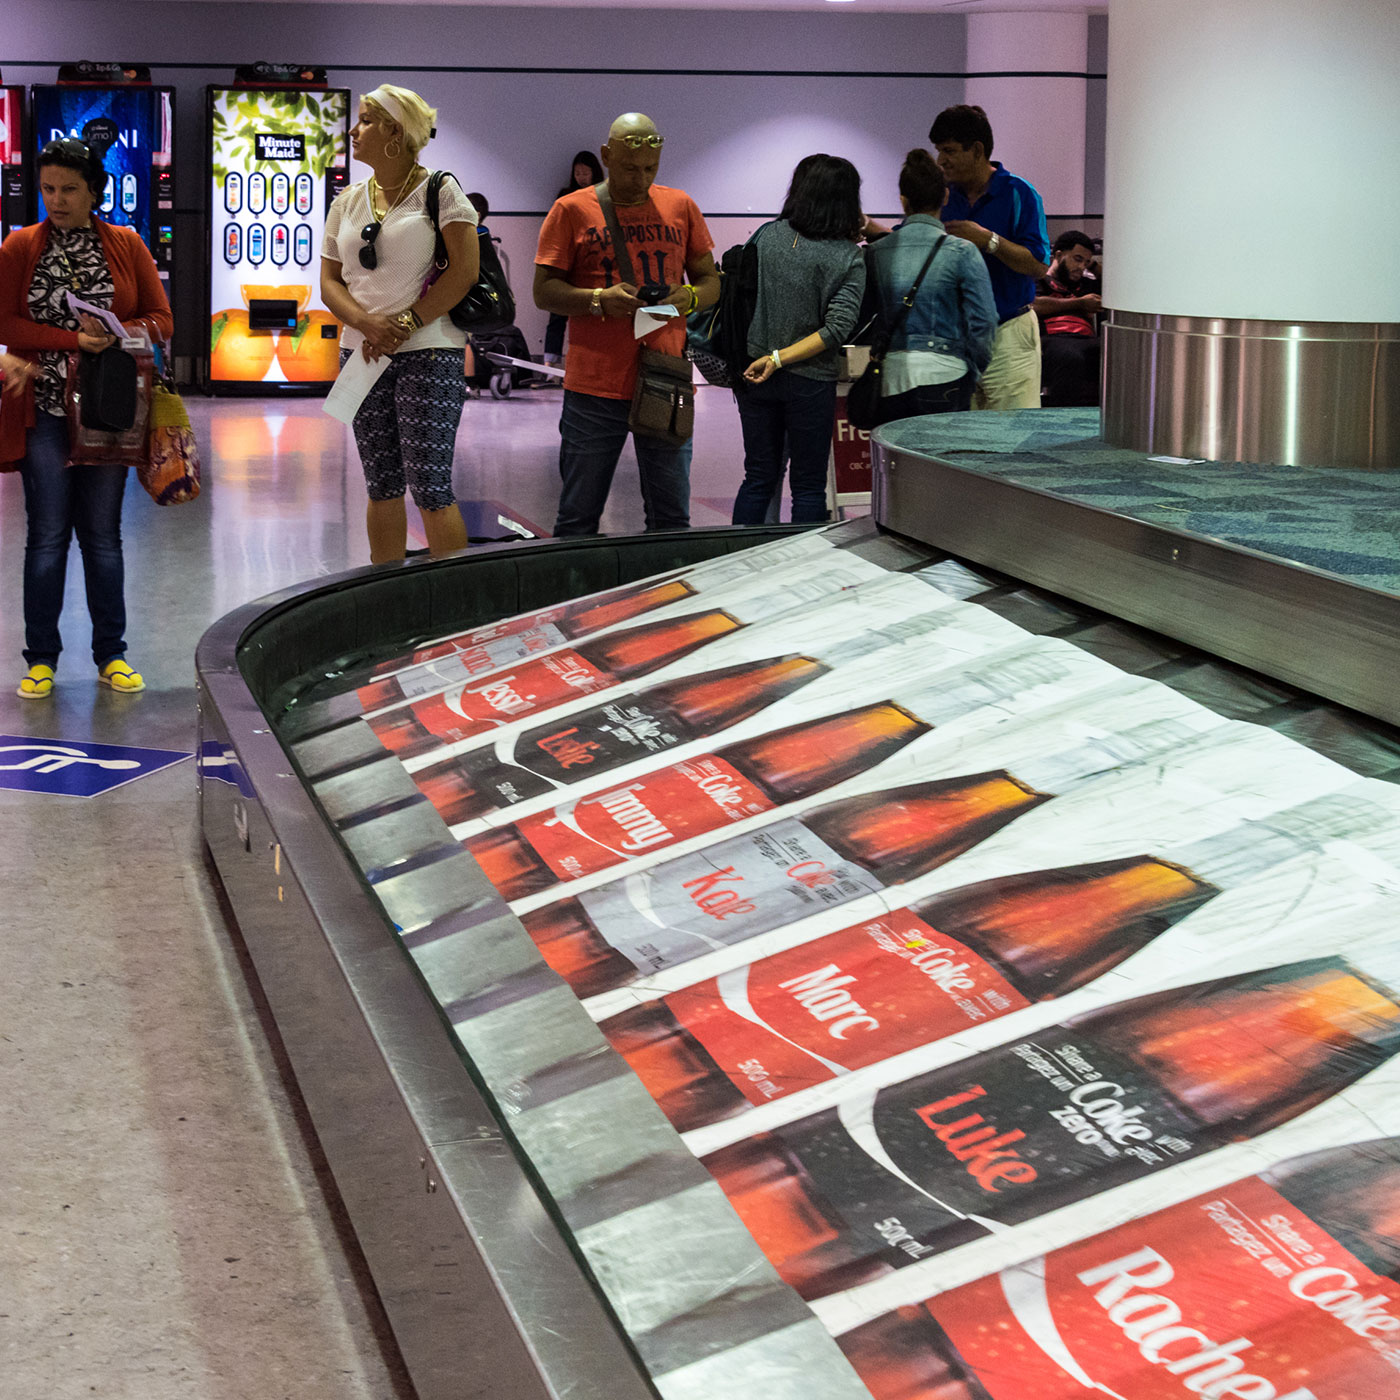 conveyer belt advertising